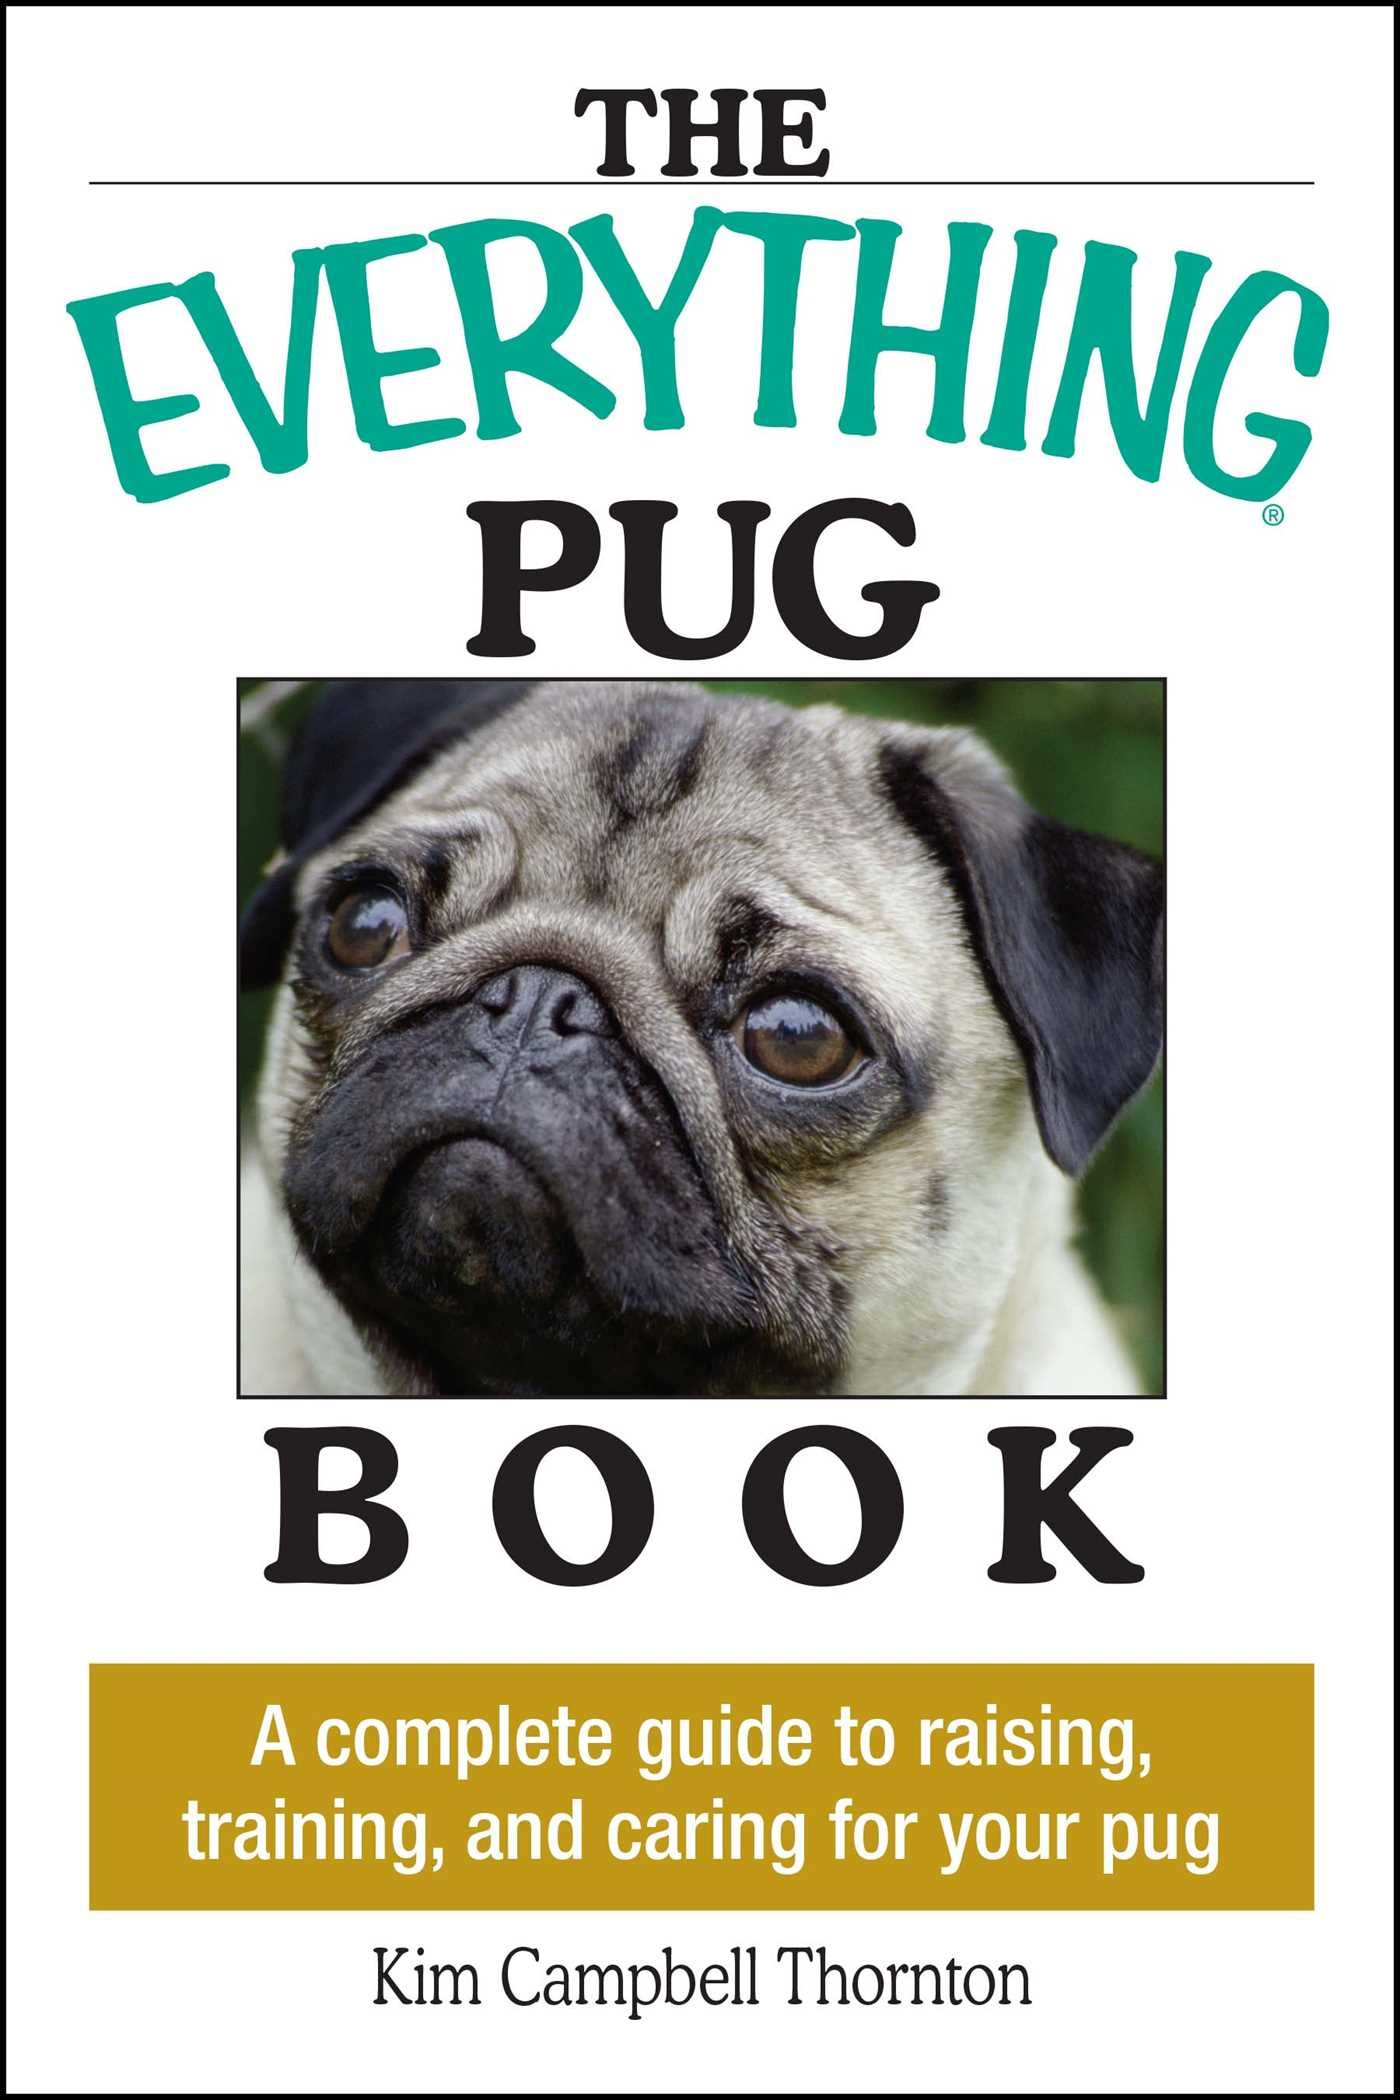 The everything pug book a complete guide to raising training and the everything pug book a complete guide to raising training and caring for your pug kim campbell thornton 9781593373146 amazon books nvjuhfo Images